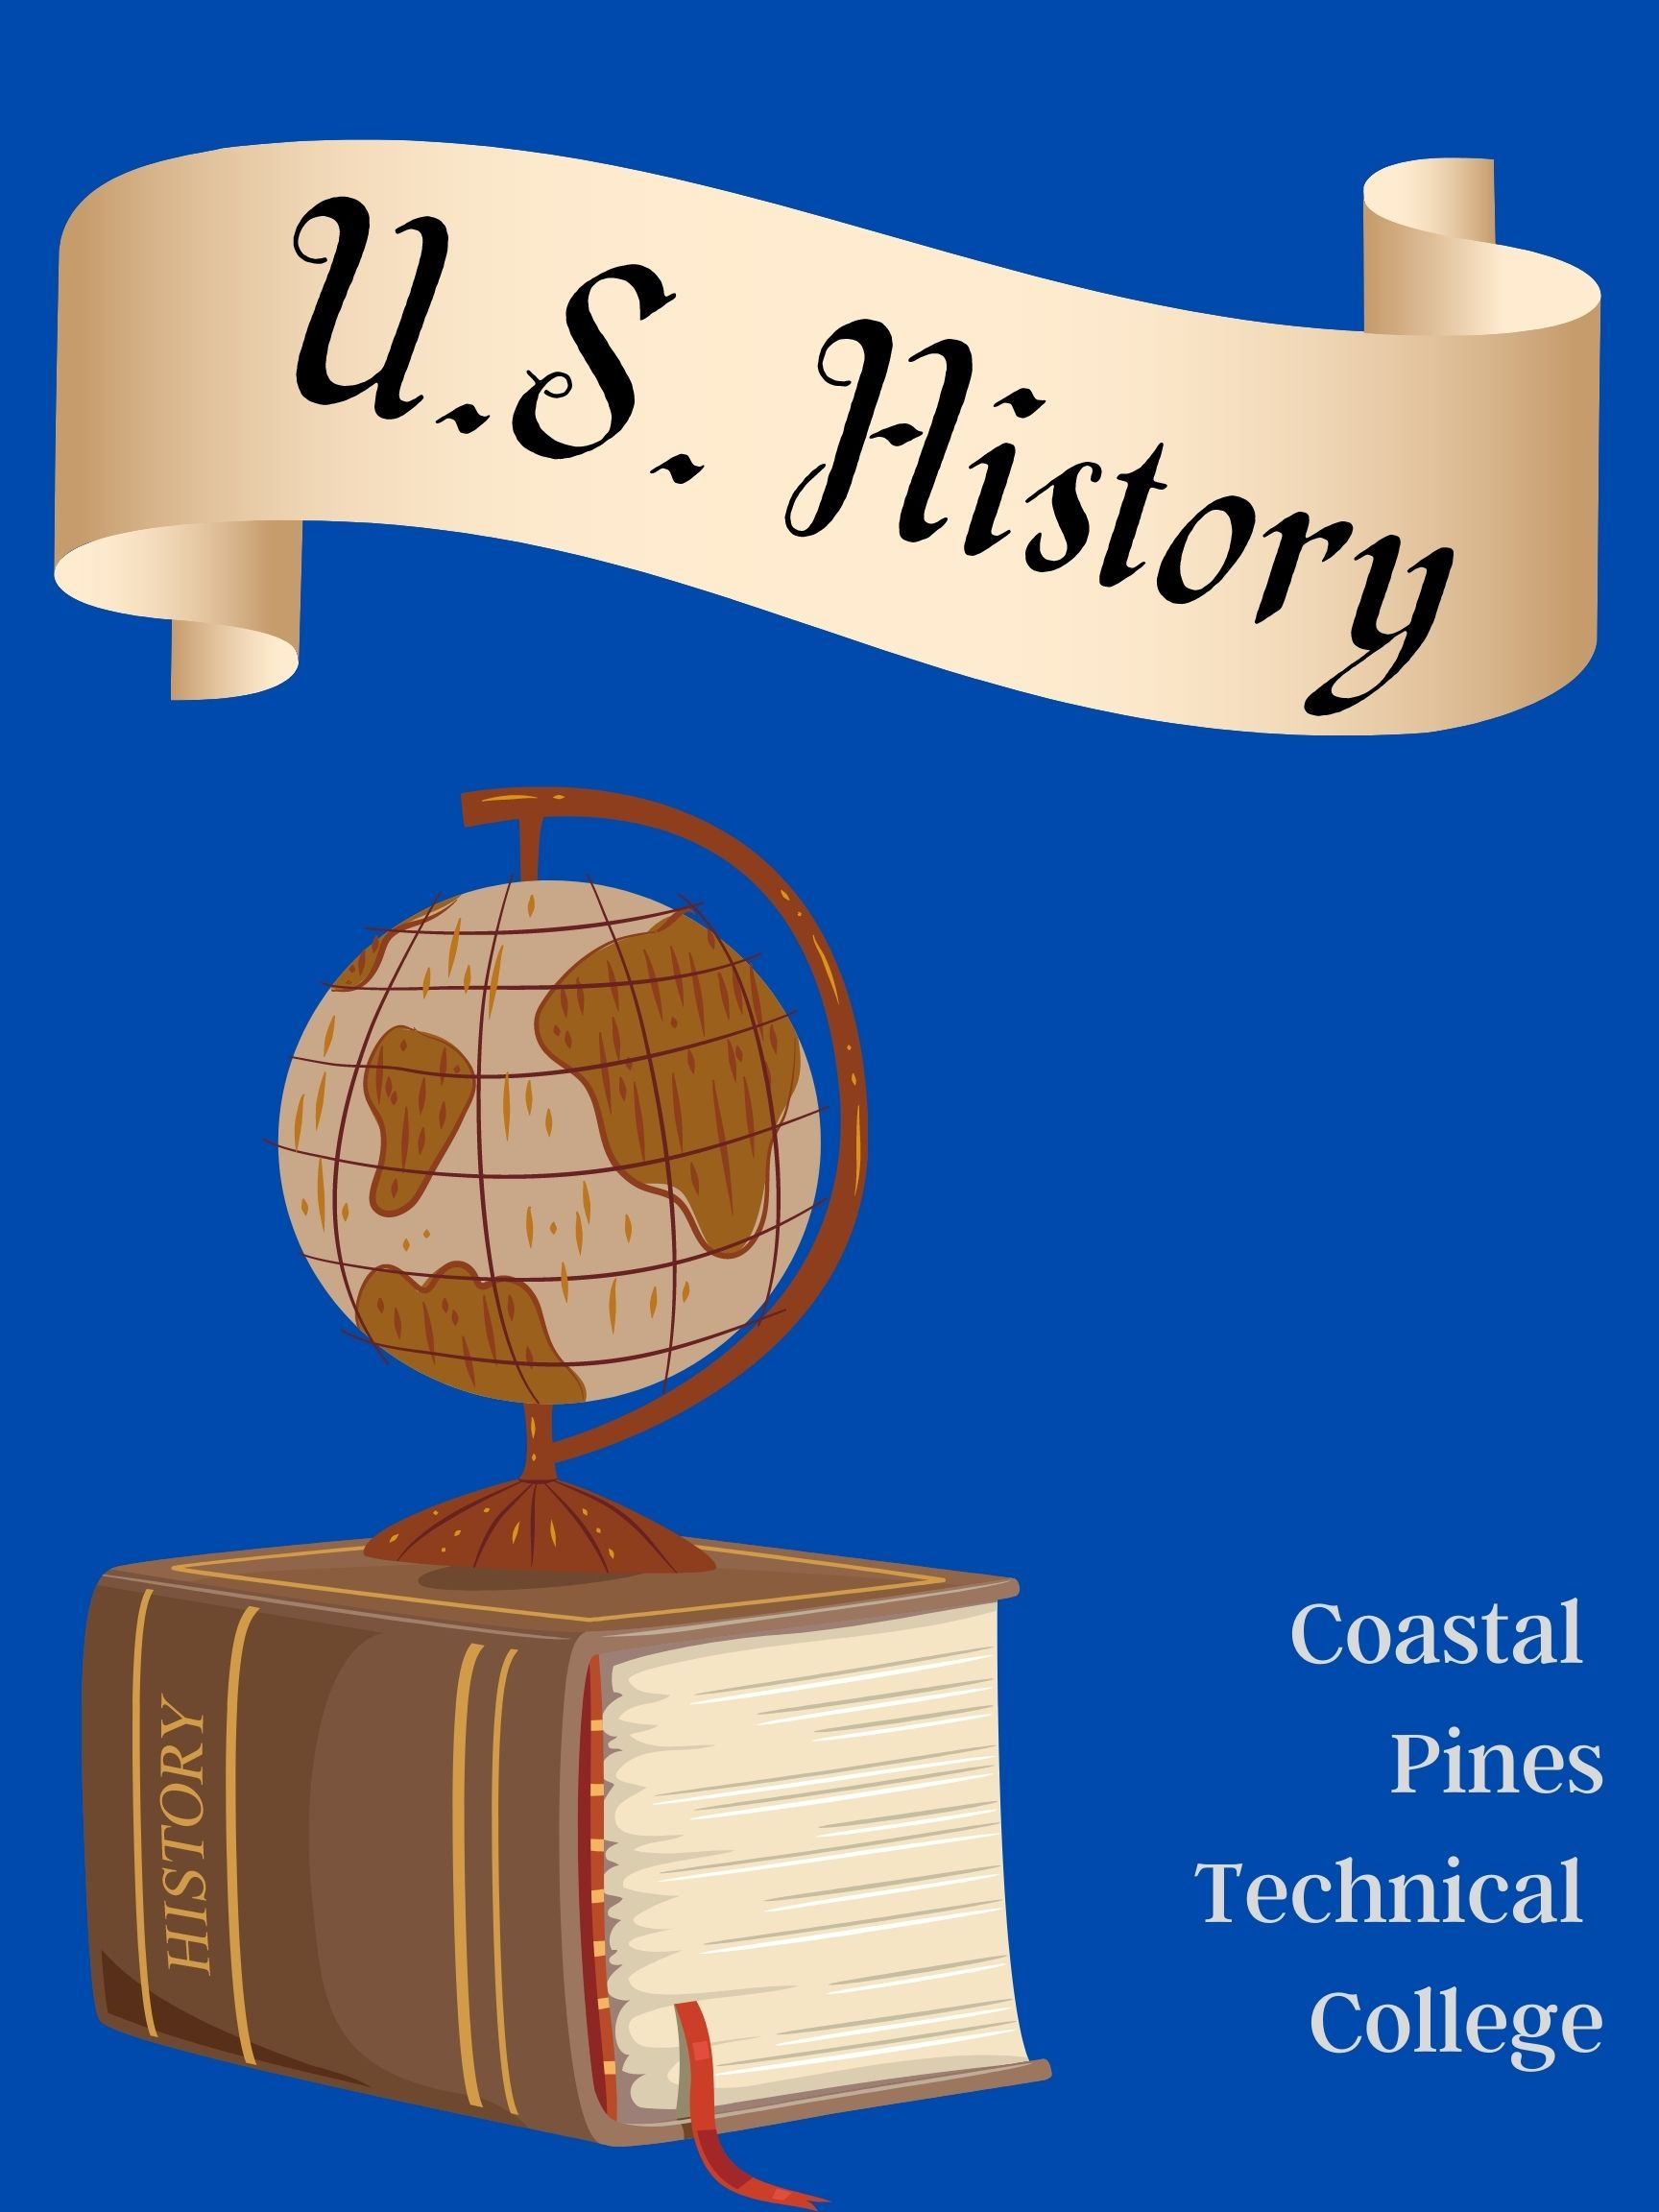 US History at Coastal Pines Technical College